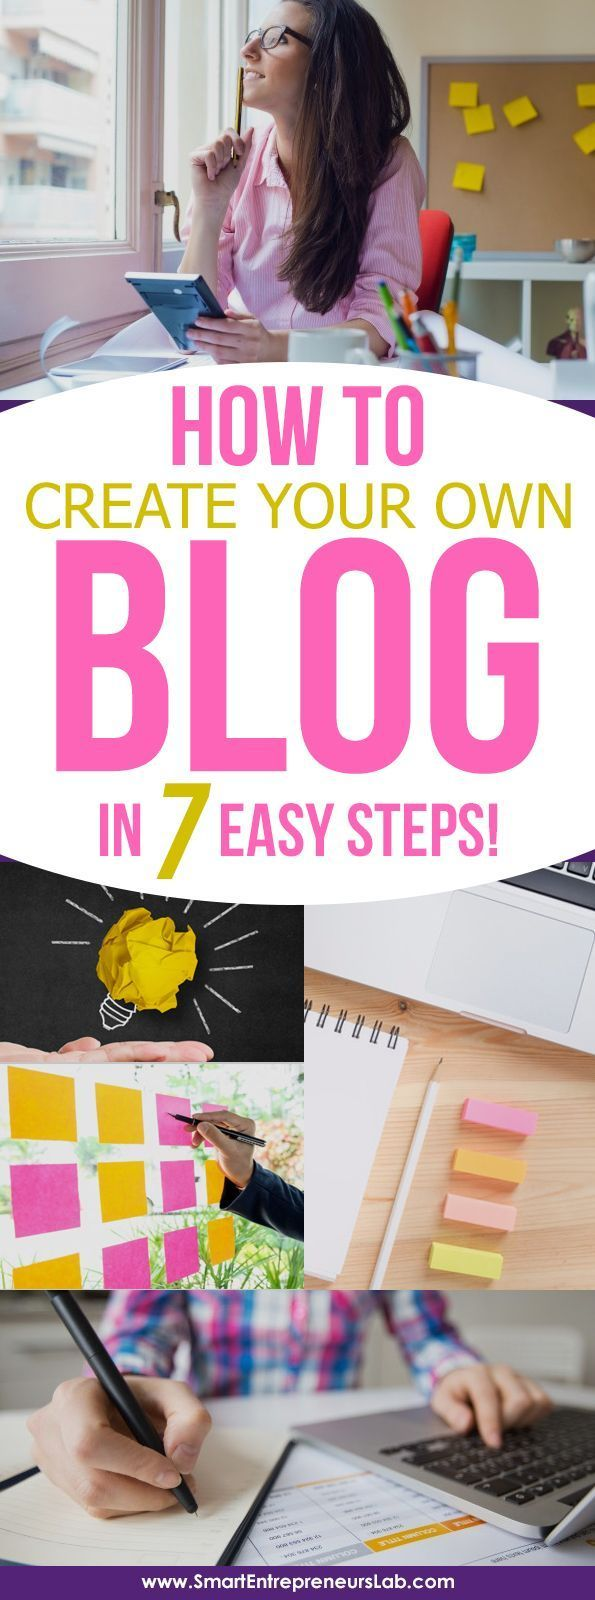 Best 25+ Build your own website ideas on Pinterest | Create own ...